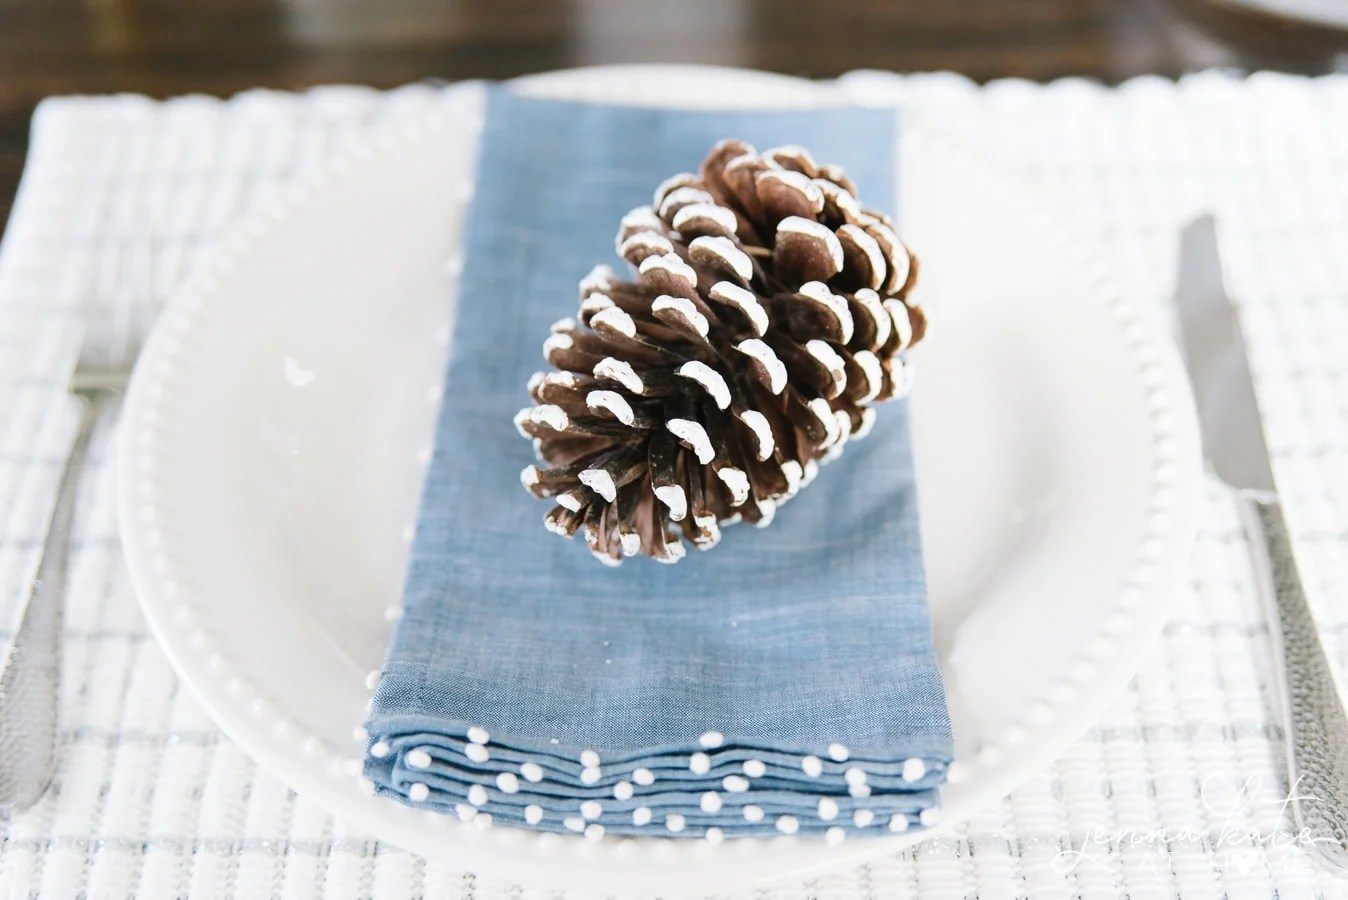 Pine cone on a white plate with a soft blue napkin